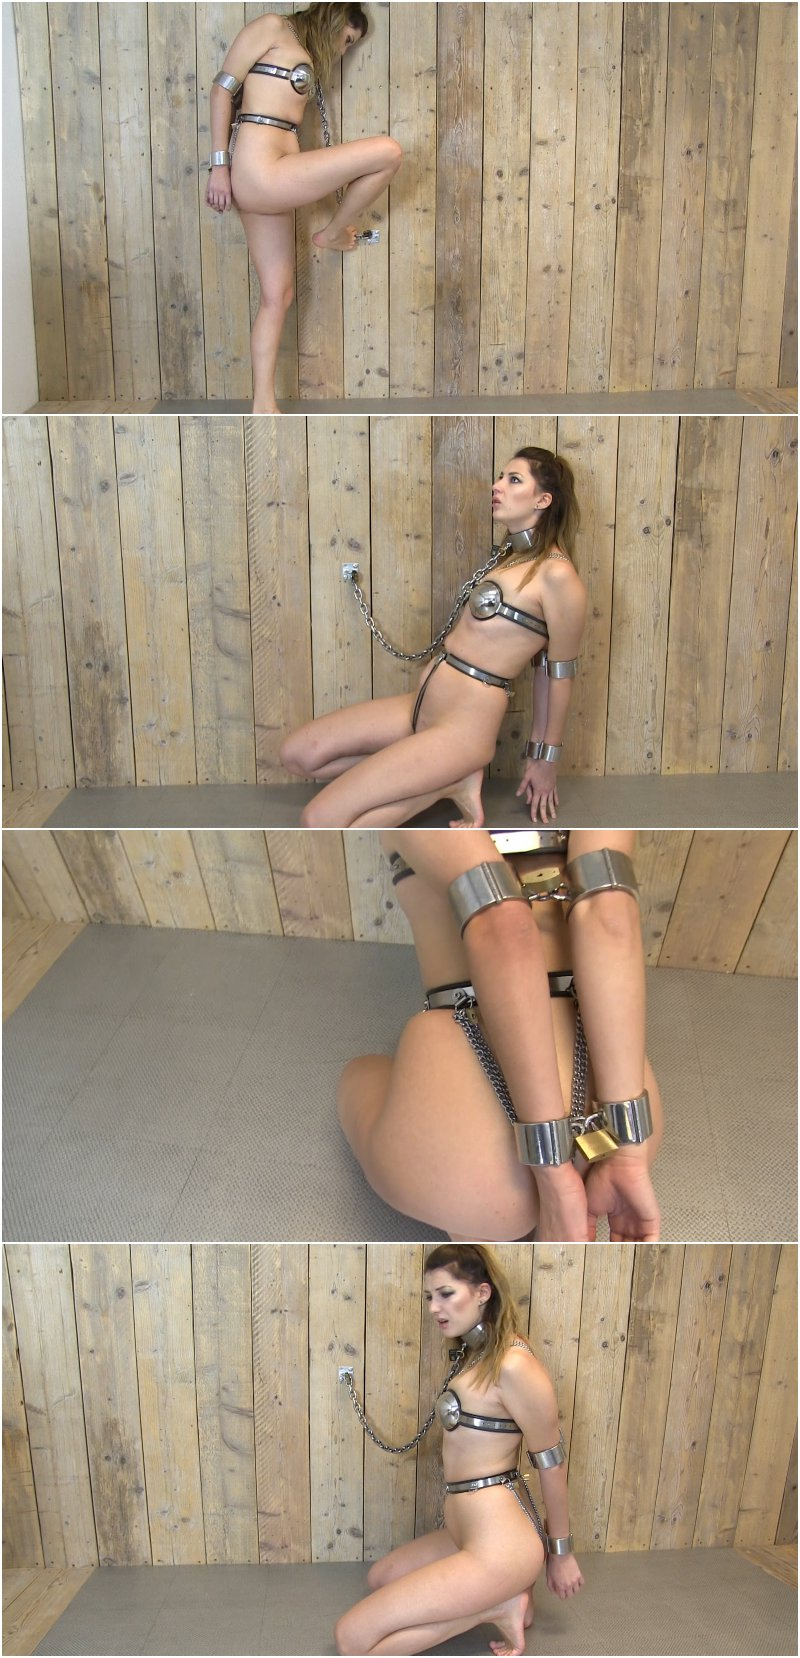 Bdsm without sex